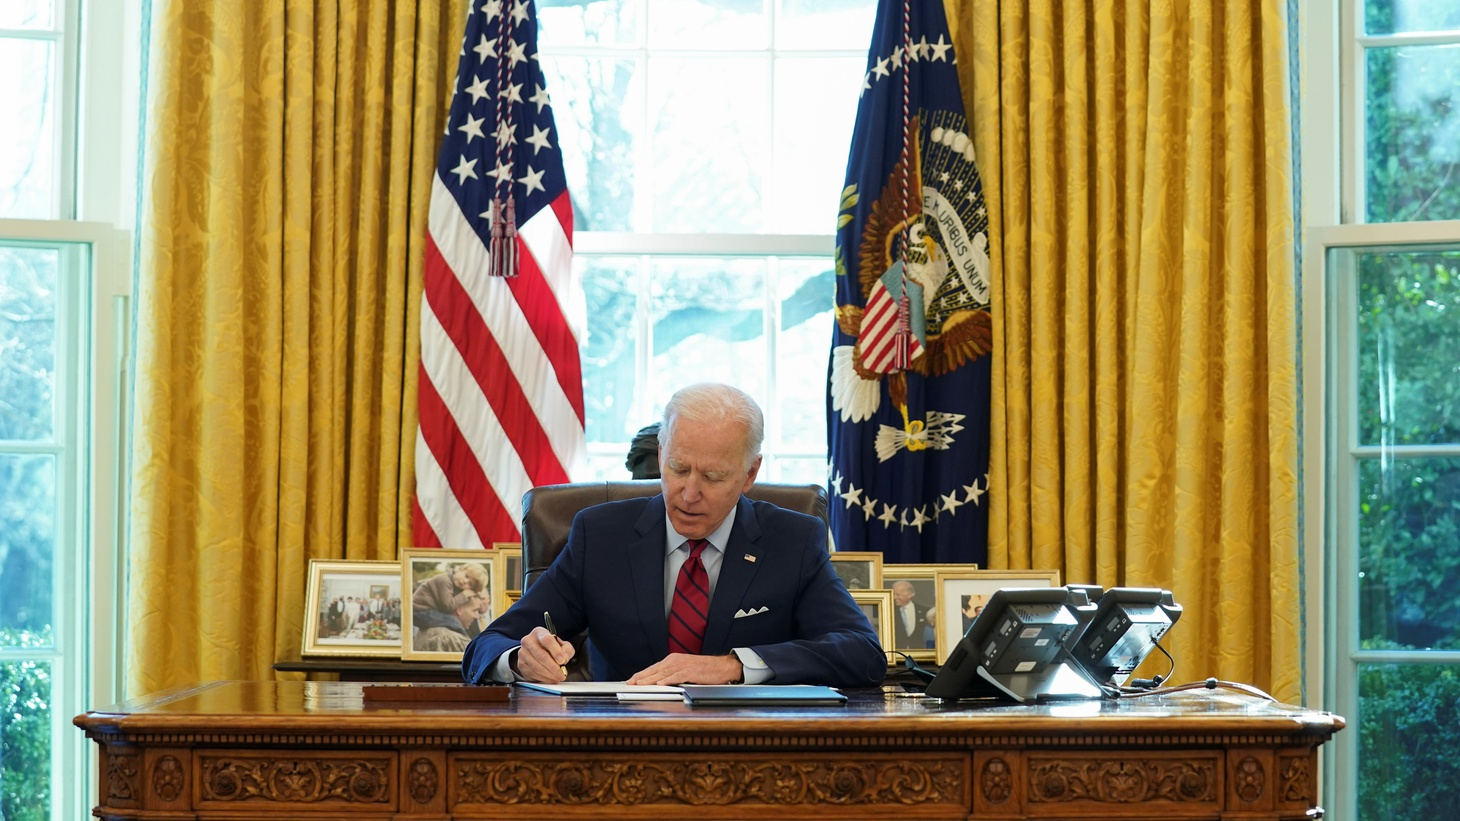 U.S. President Joe Biden signs executive orders strengthening access to affordable healthcare at the White House in Washington, U.S., January 28, 2021.